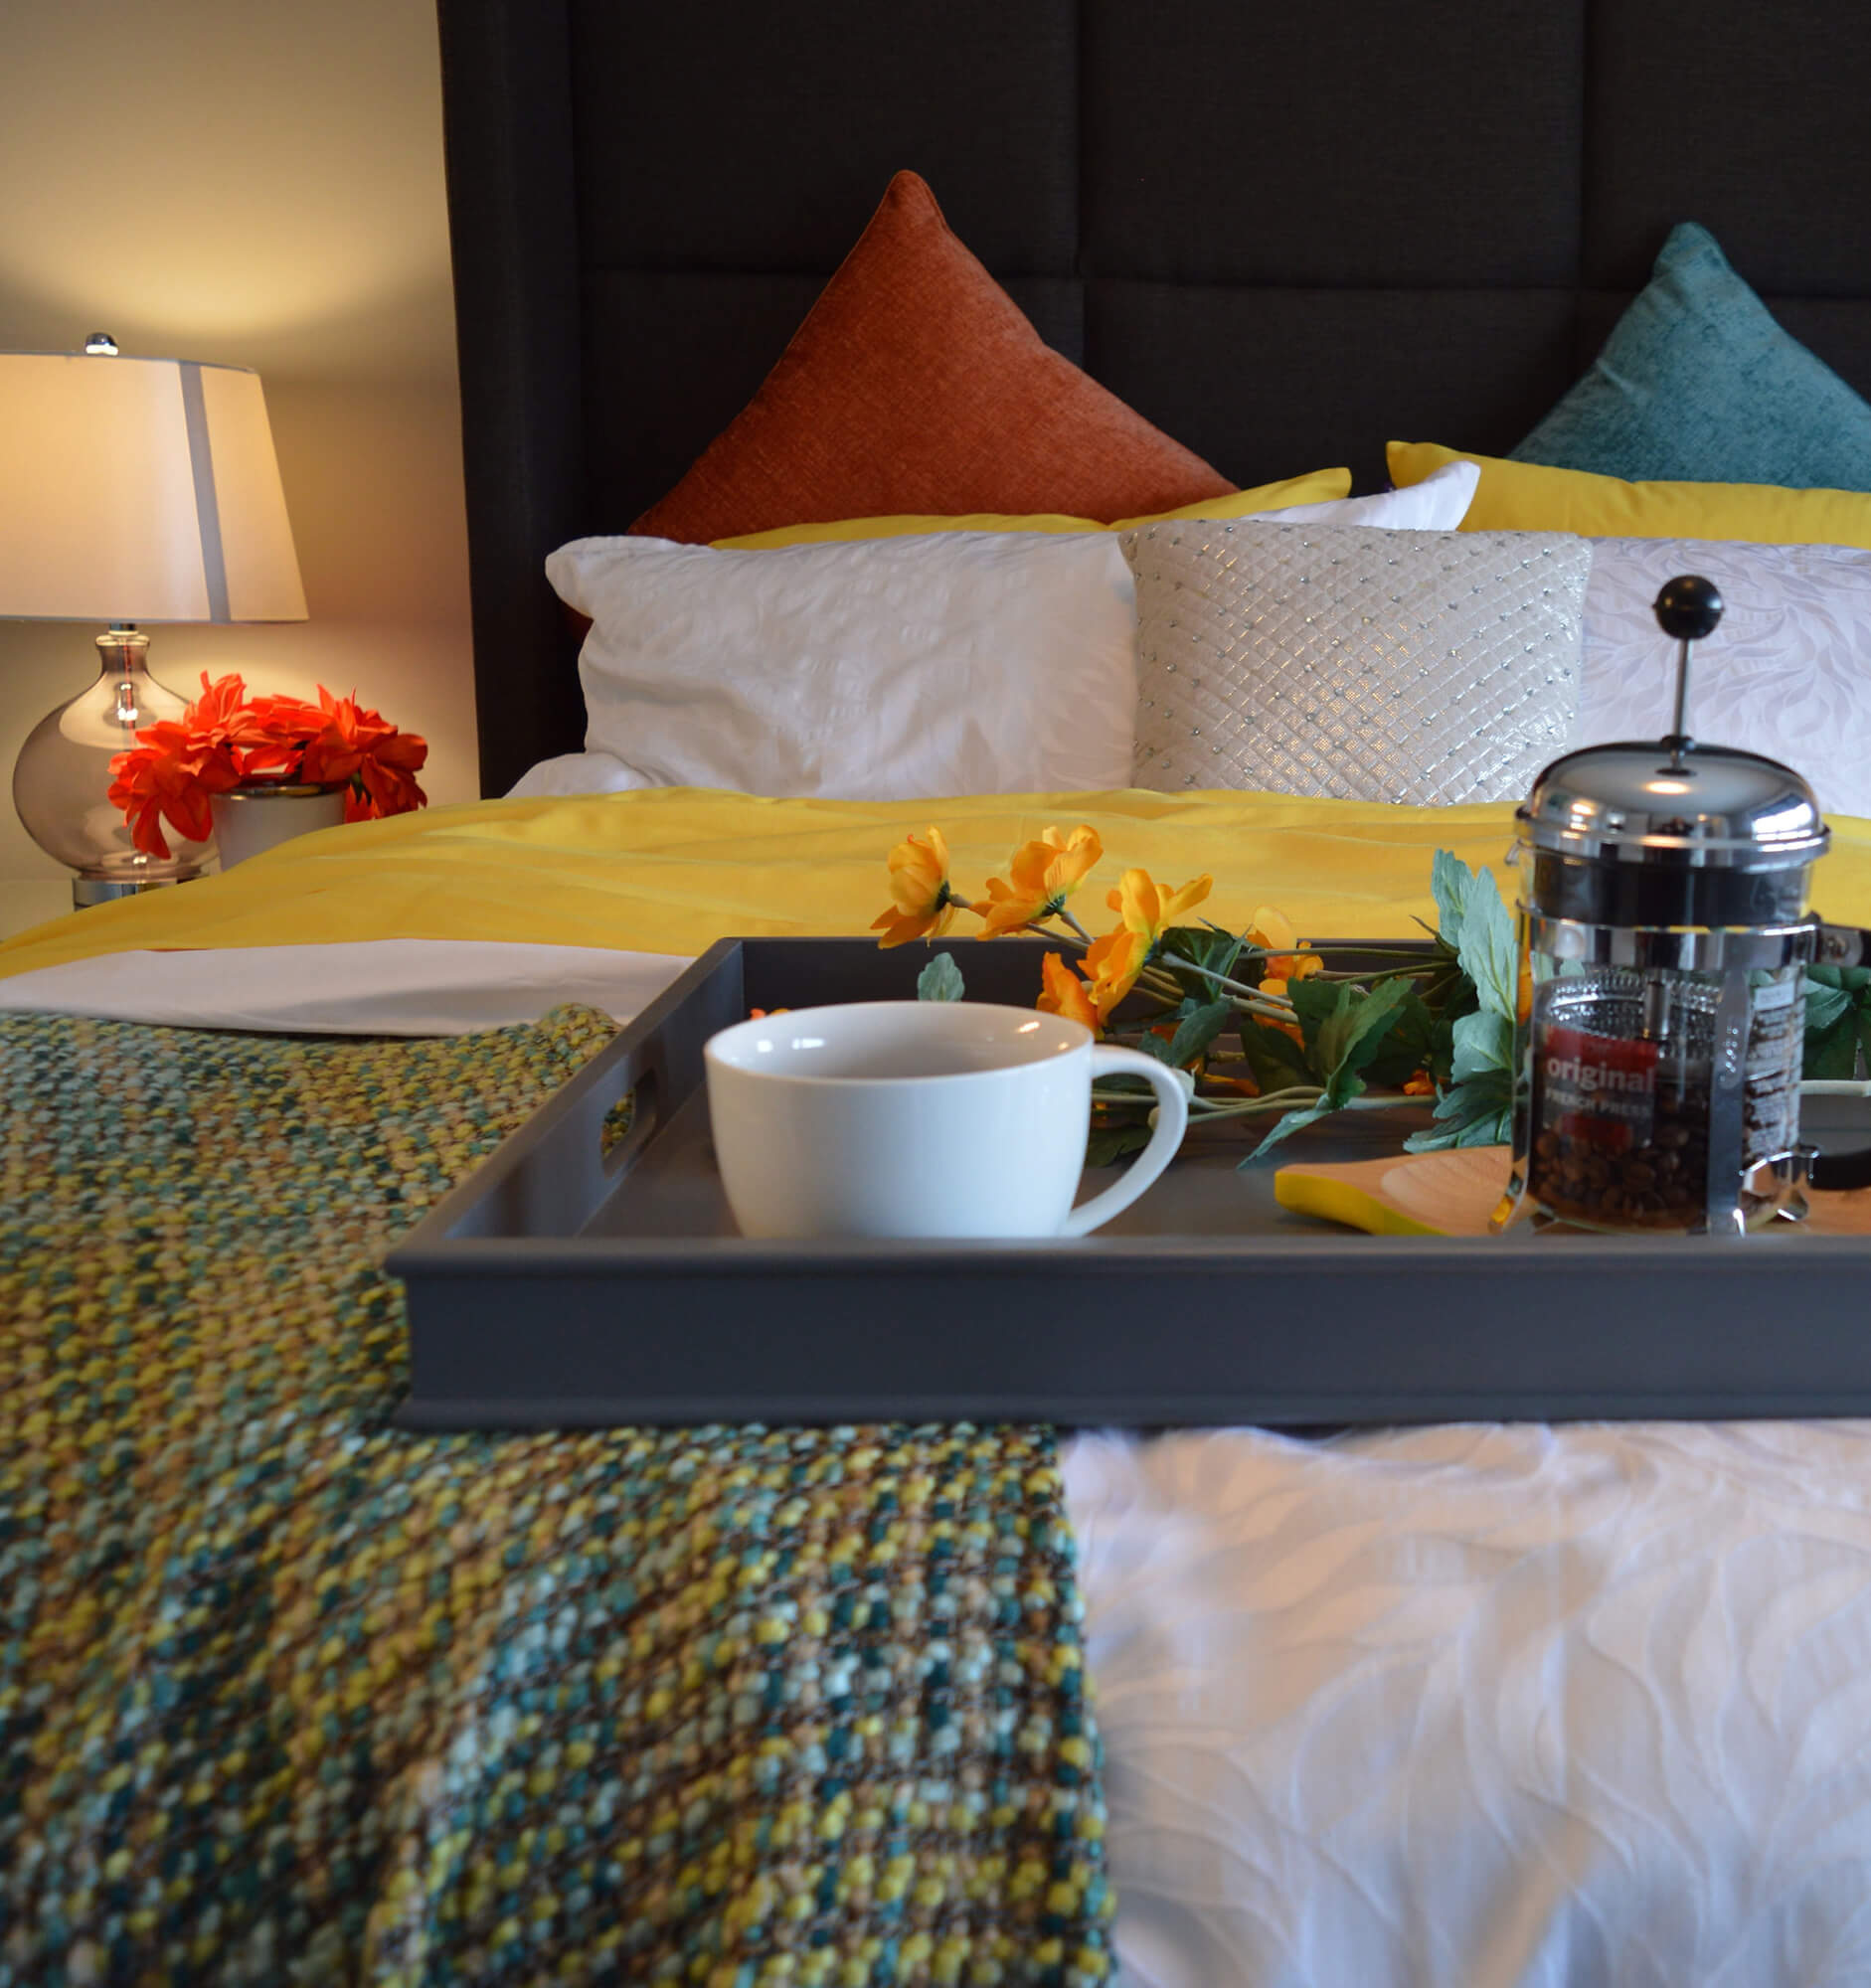 Food tray with coffe cup and carafe on end of bed in hotel guestroom decorated with colorful pillows, throw blanket, and flowers.